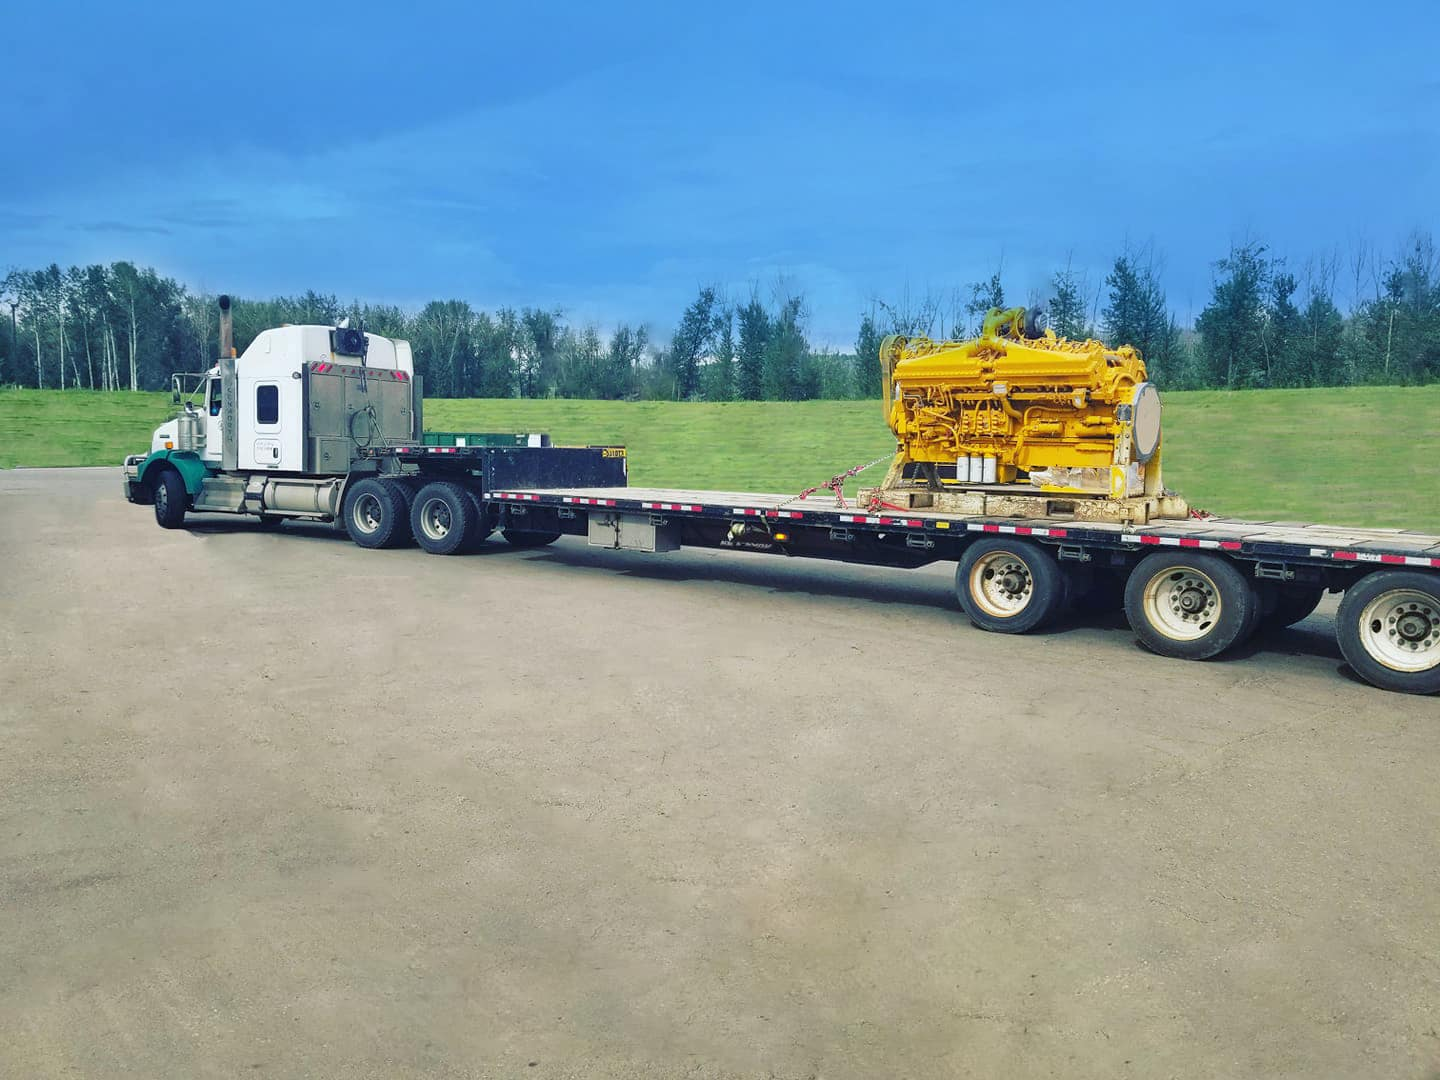 Transport Equipment - Hauling - 4 Seasons Transport & Towing